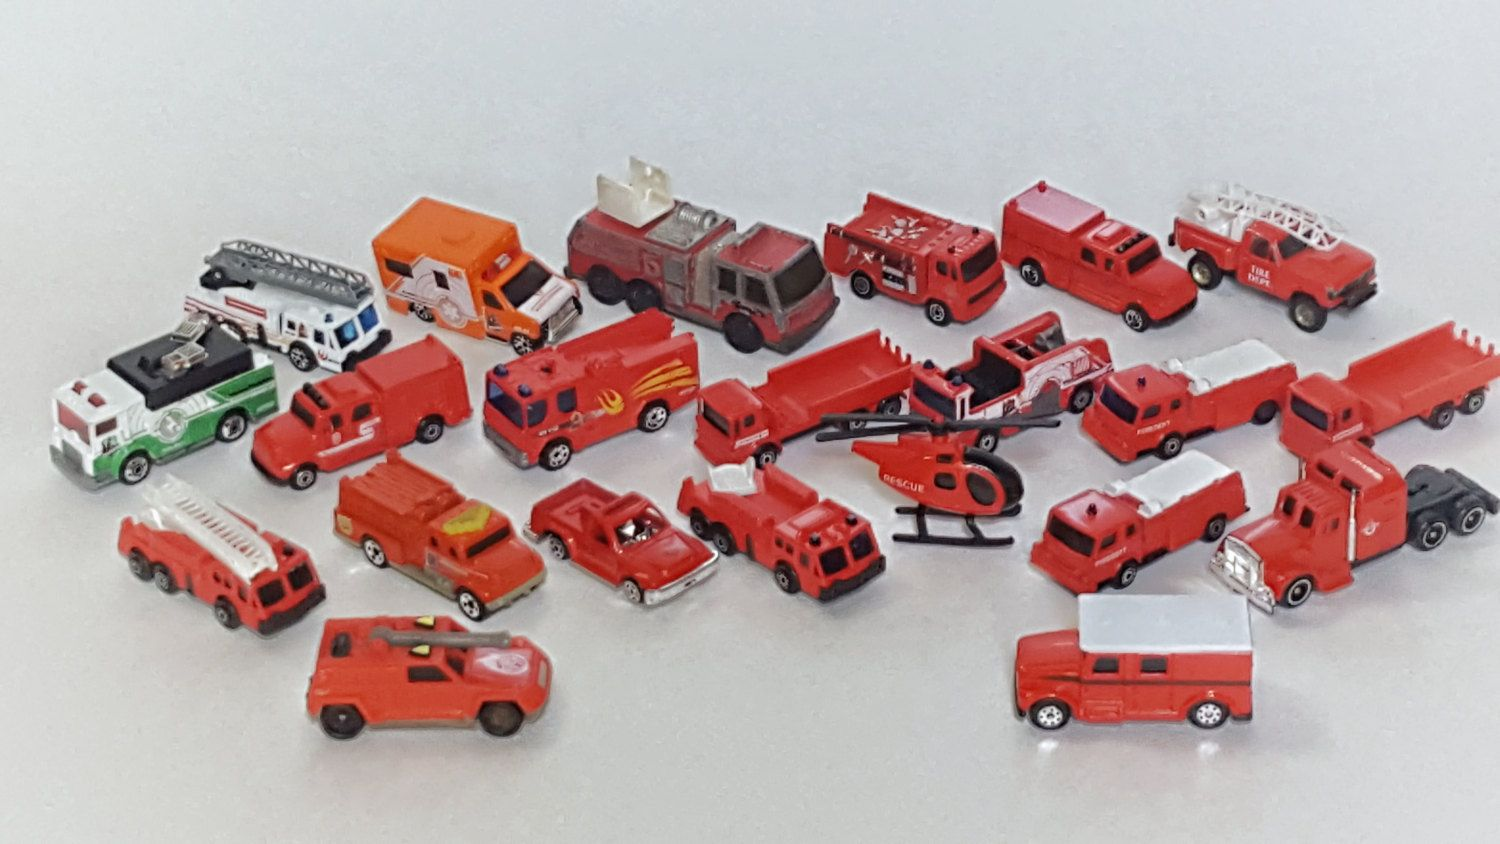 Hot Wheels FIRETRUCKS 1:64 Scale Diecast Cars FIRE Trucks Lot of 22 Toy Vehicles by VtgTreasureTroves on Etsy